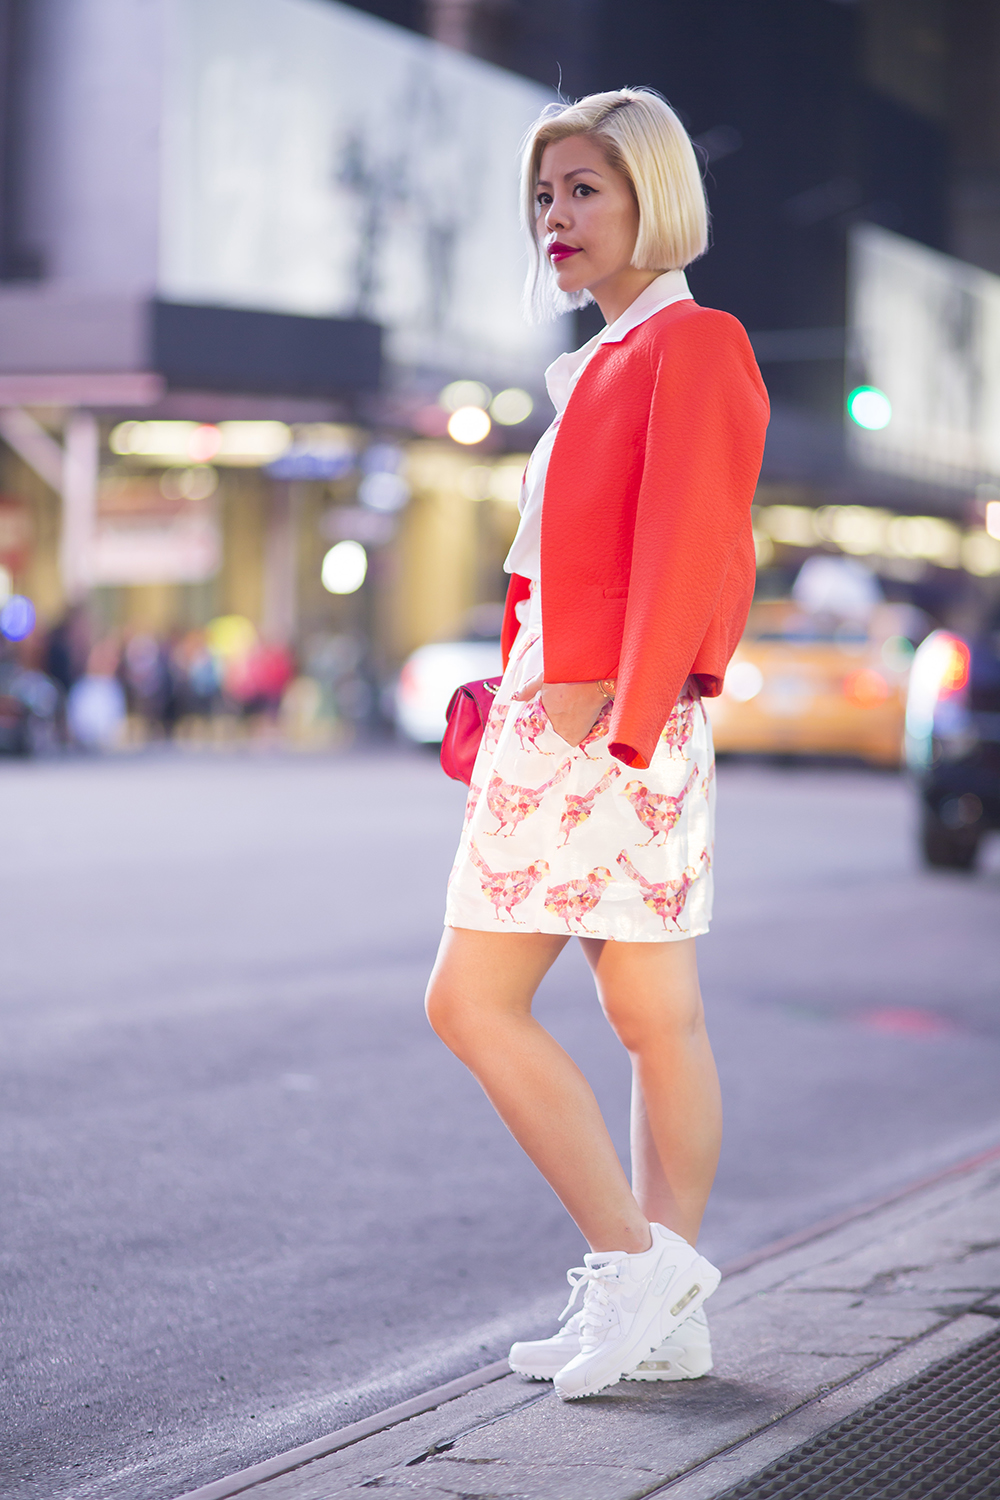 New York Fashion Week 2015- Crystal Phuong- Times Square at night